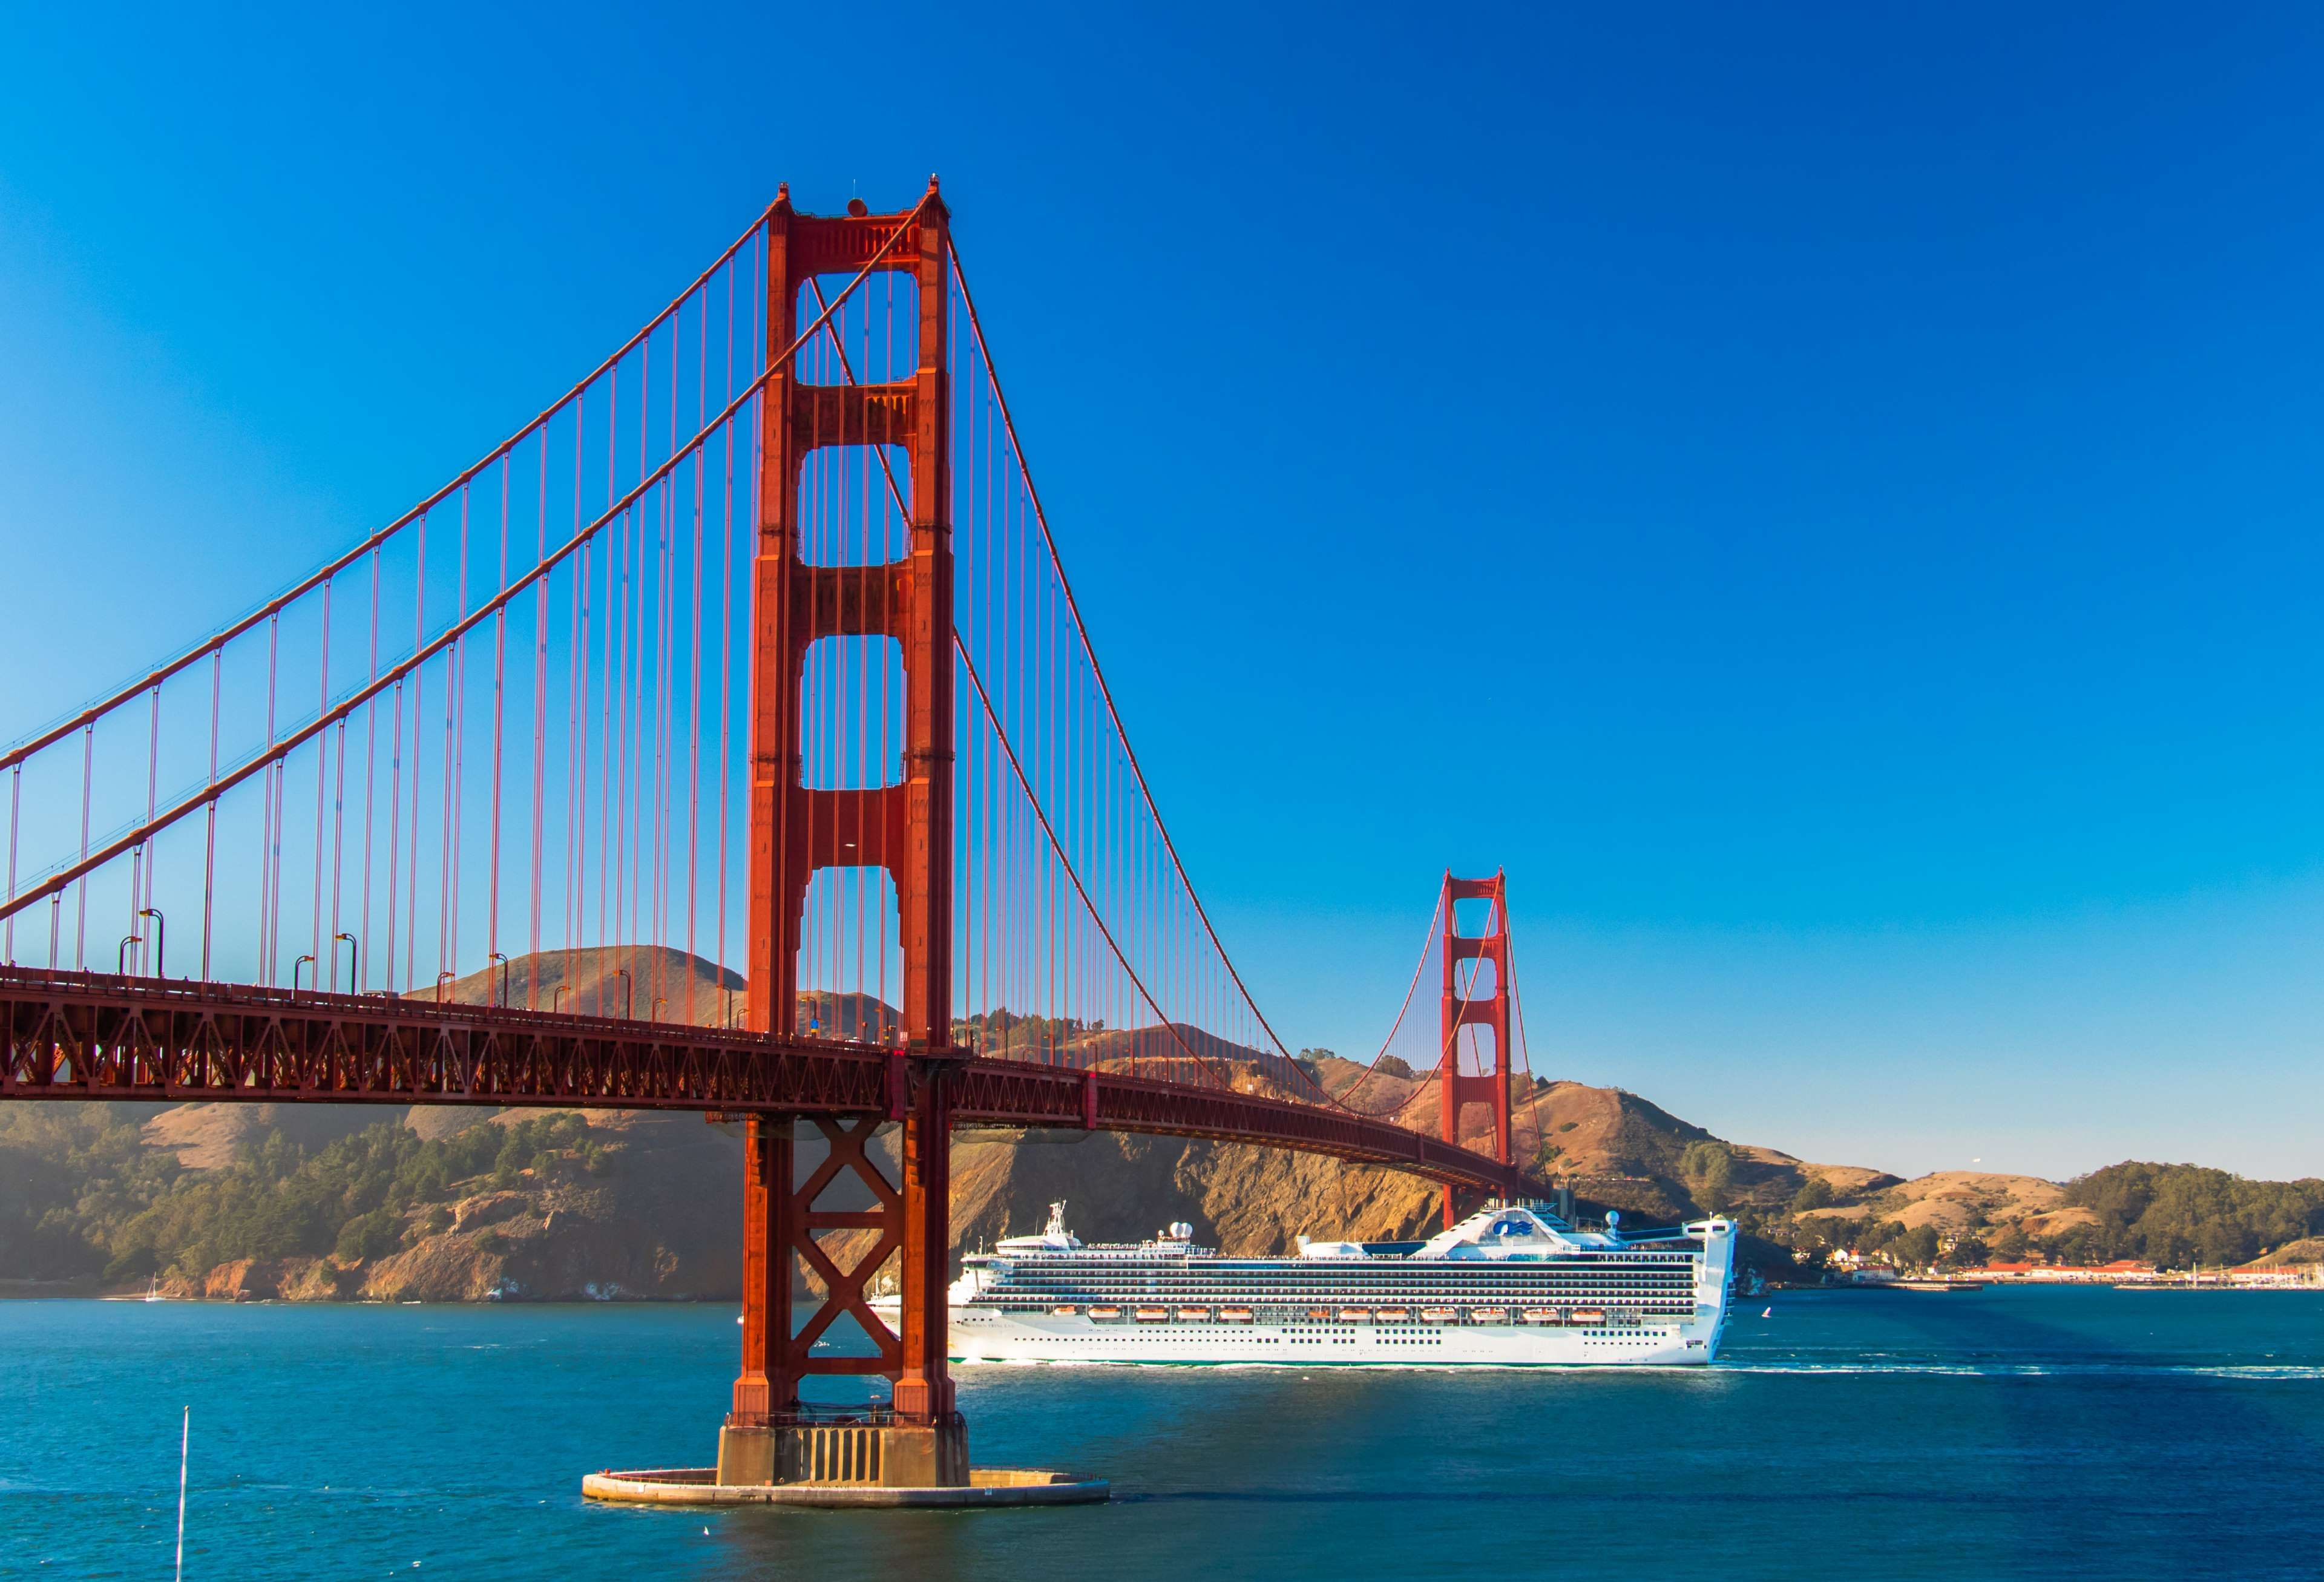 Architecture Blue Sky Bridge Cruise Cruise Ship Golden Gate Bridge No Clouds San Francisco 4k Golden Gate Bridge Golden Gate Sky Bridge